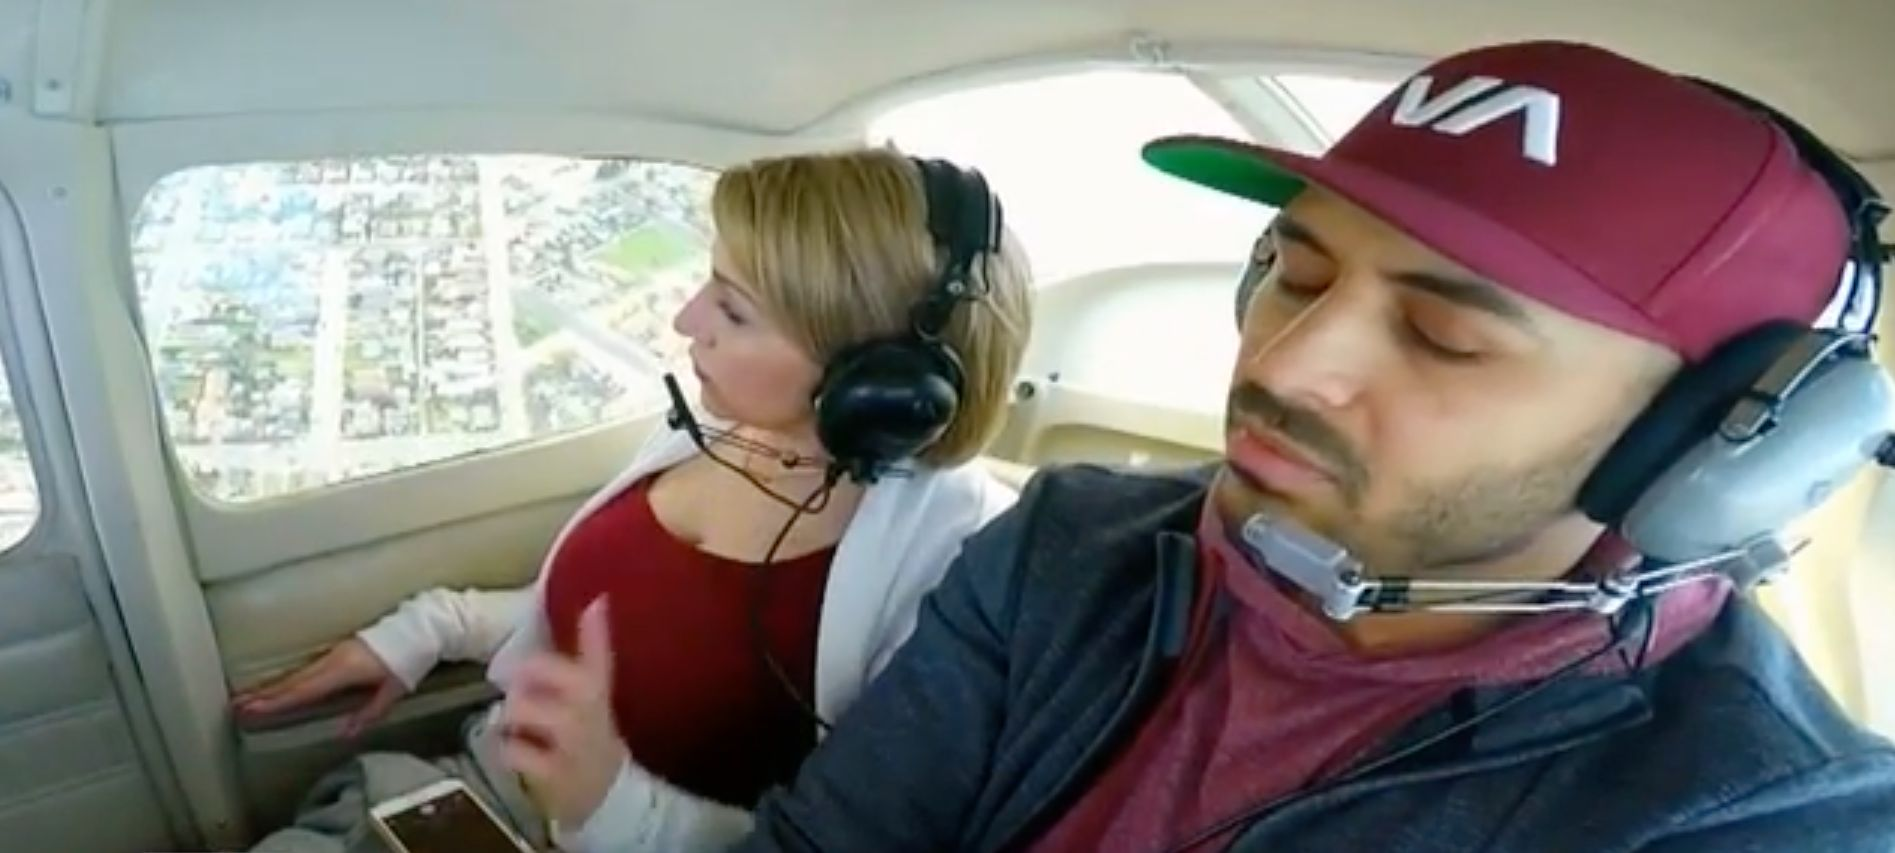 Guy Vomits While Proposing To Girlfriend In Plane